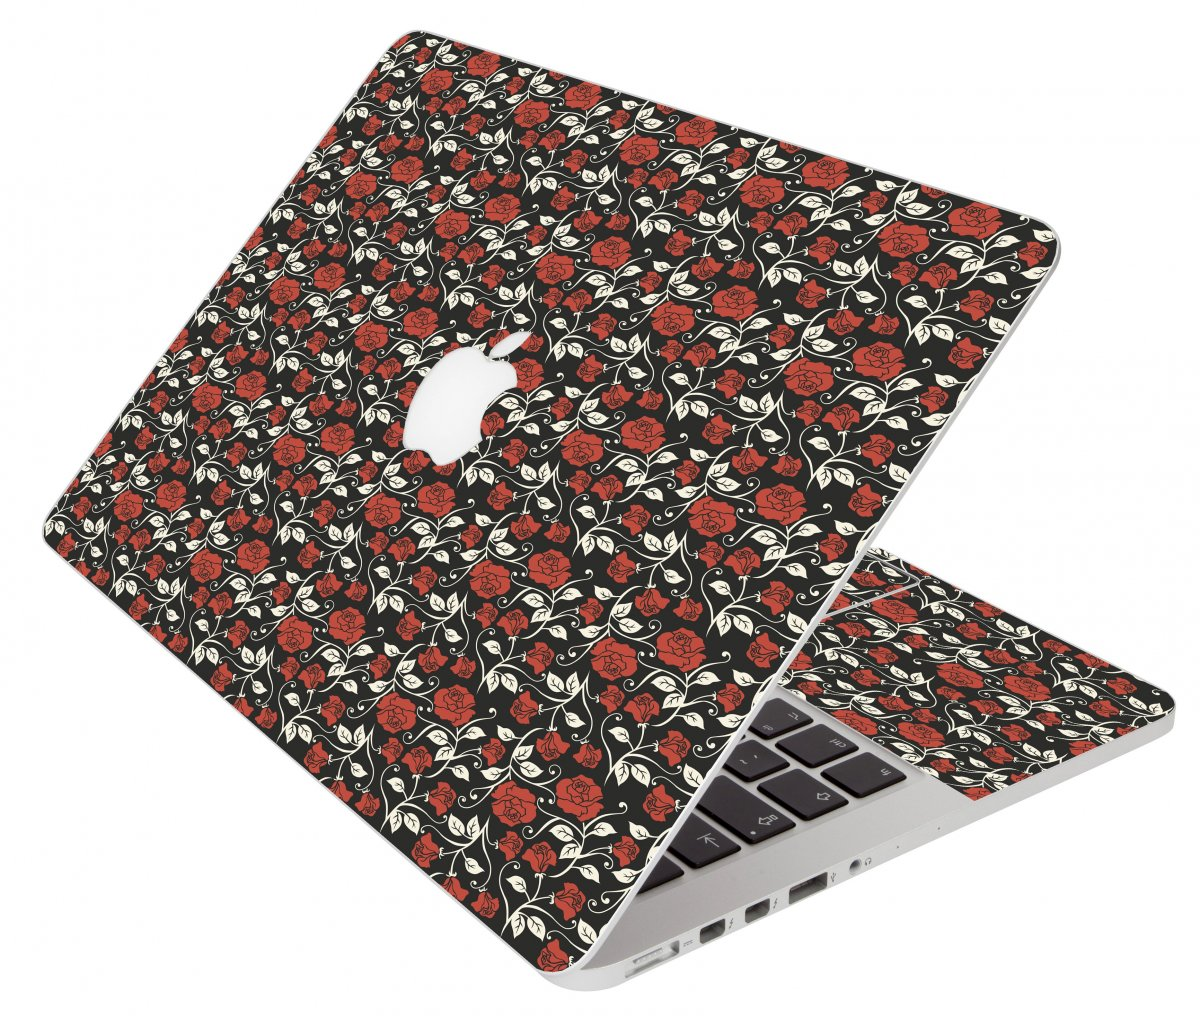 Black Red Roses Apple Macbook Original 13 A1181 Laptop Skin